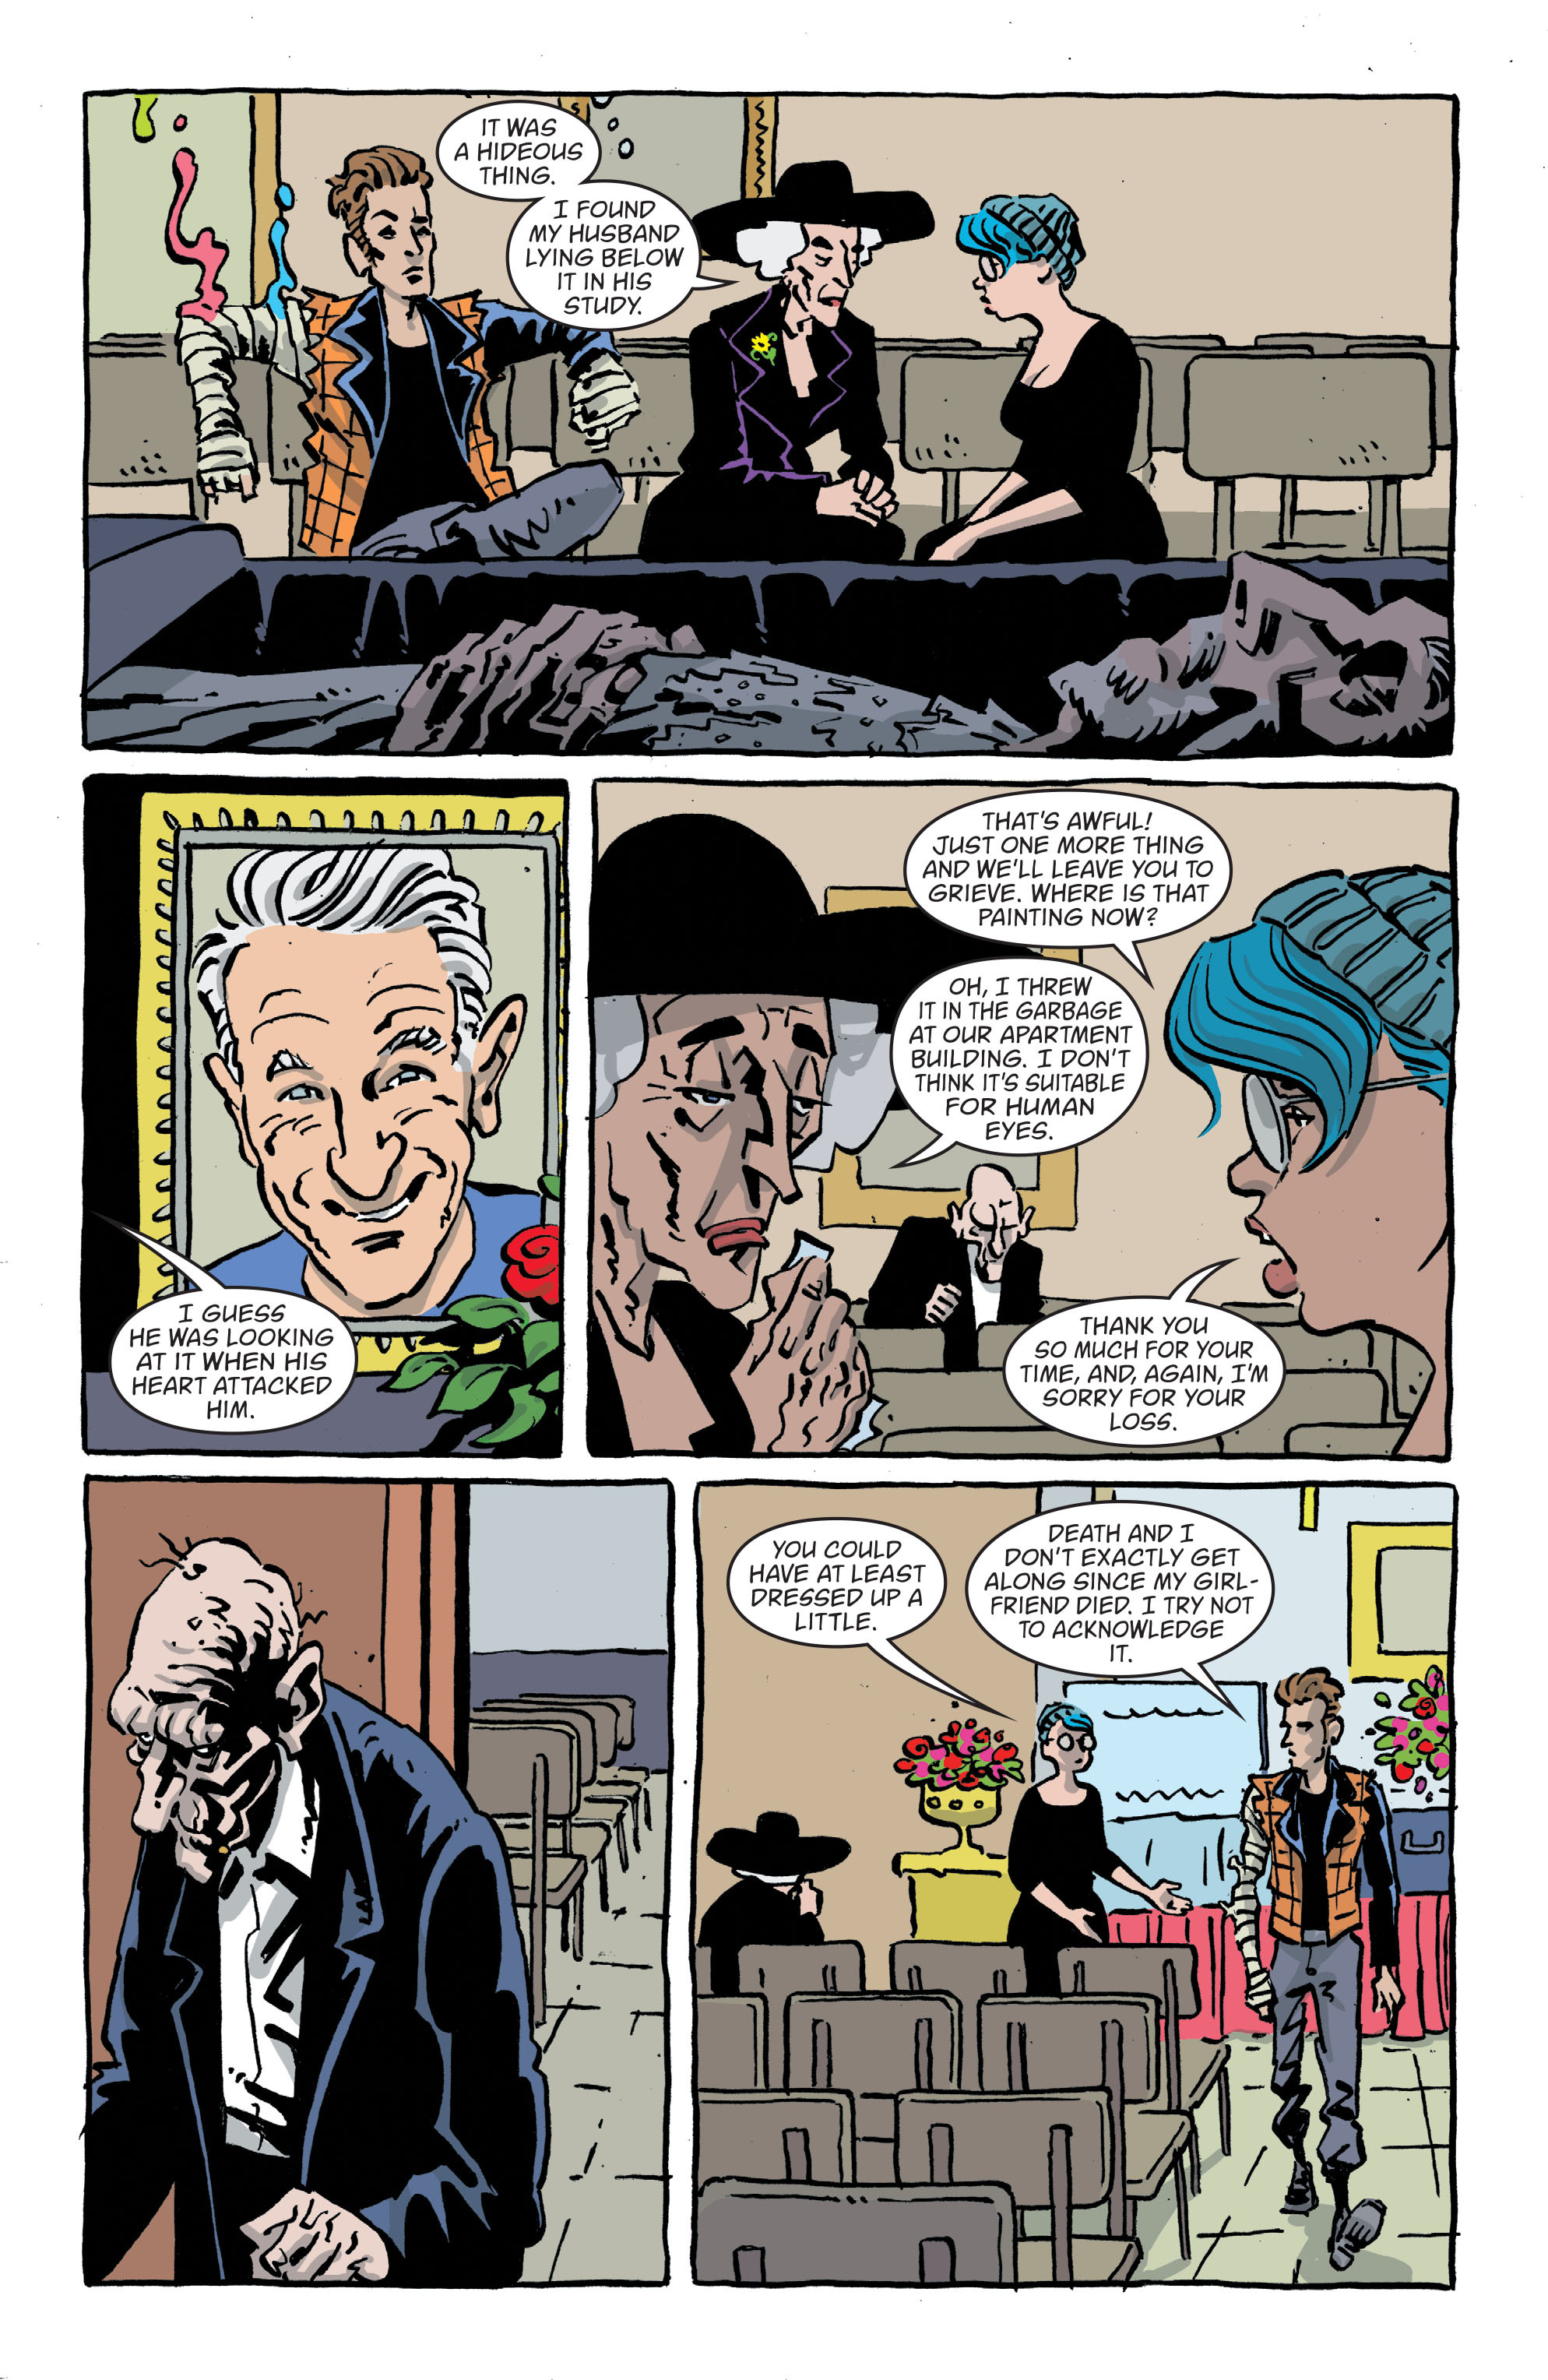 Read online Art Ops comic -  Issue #11 - 10